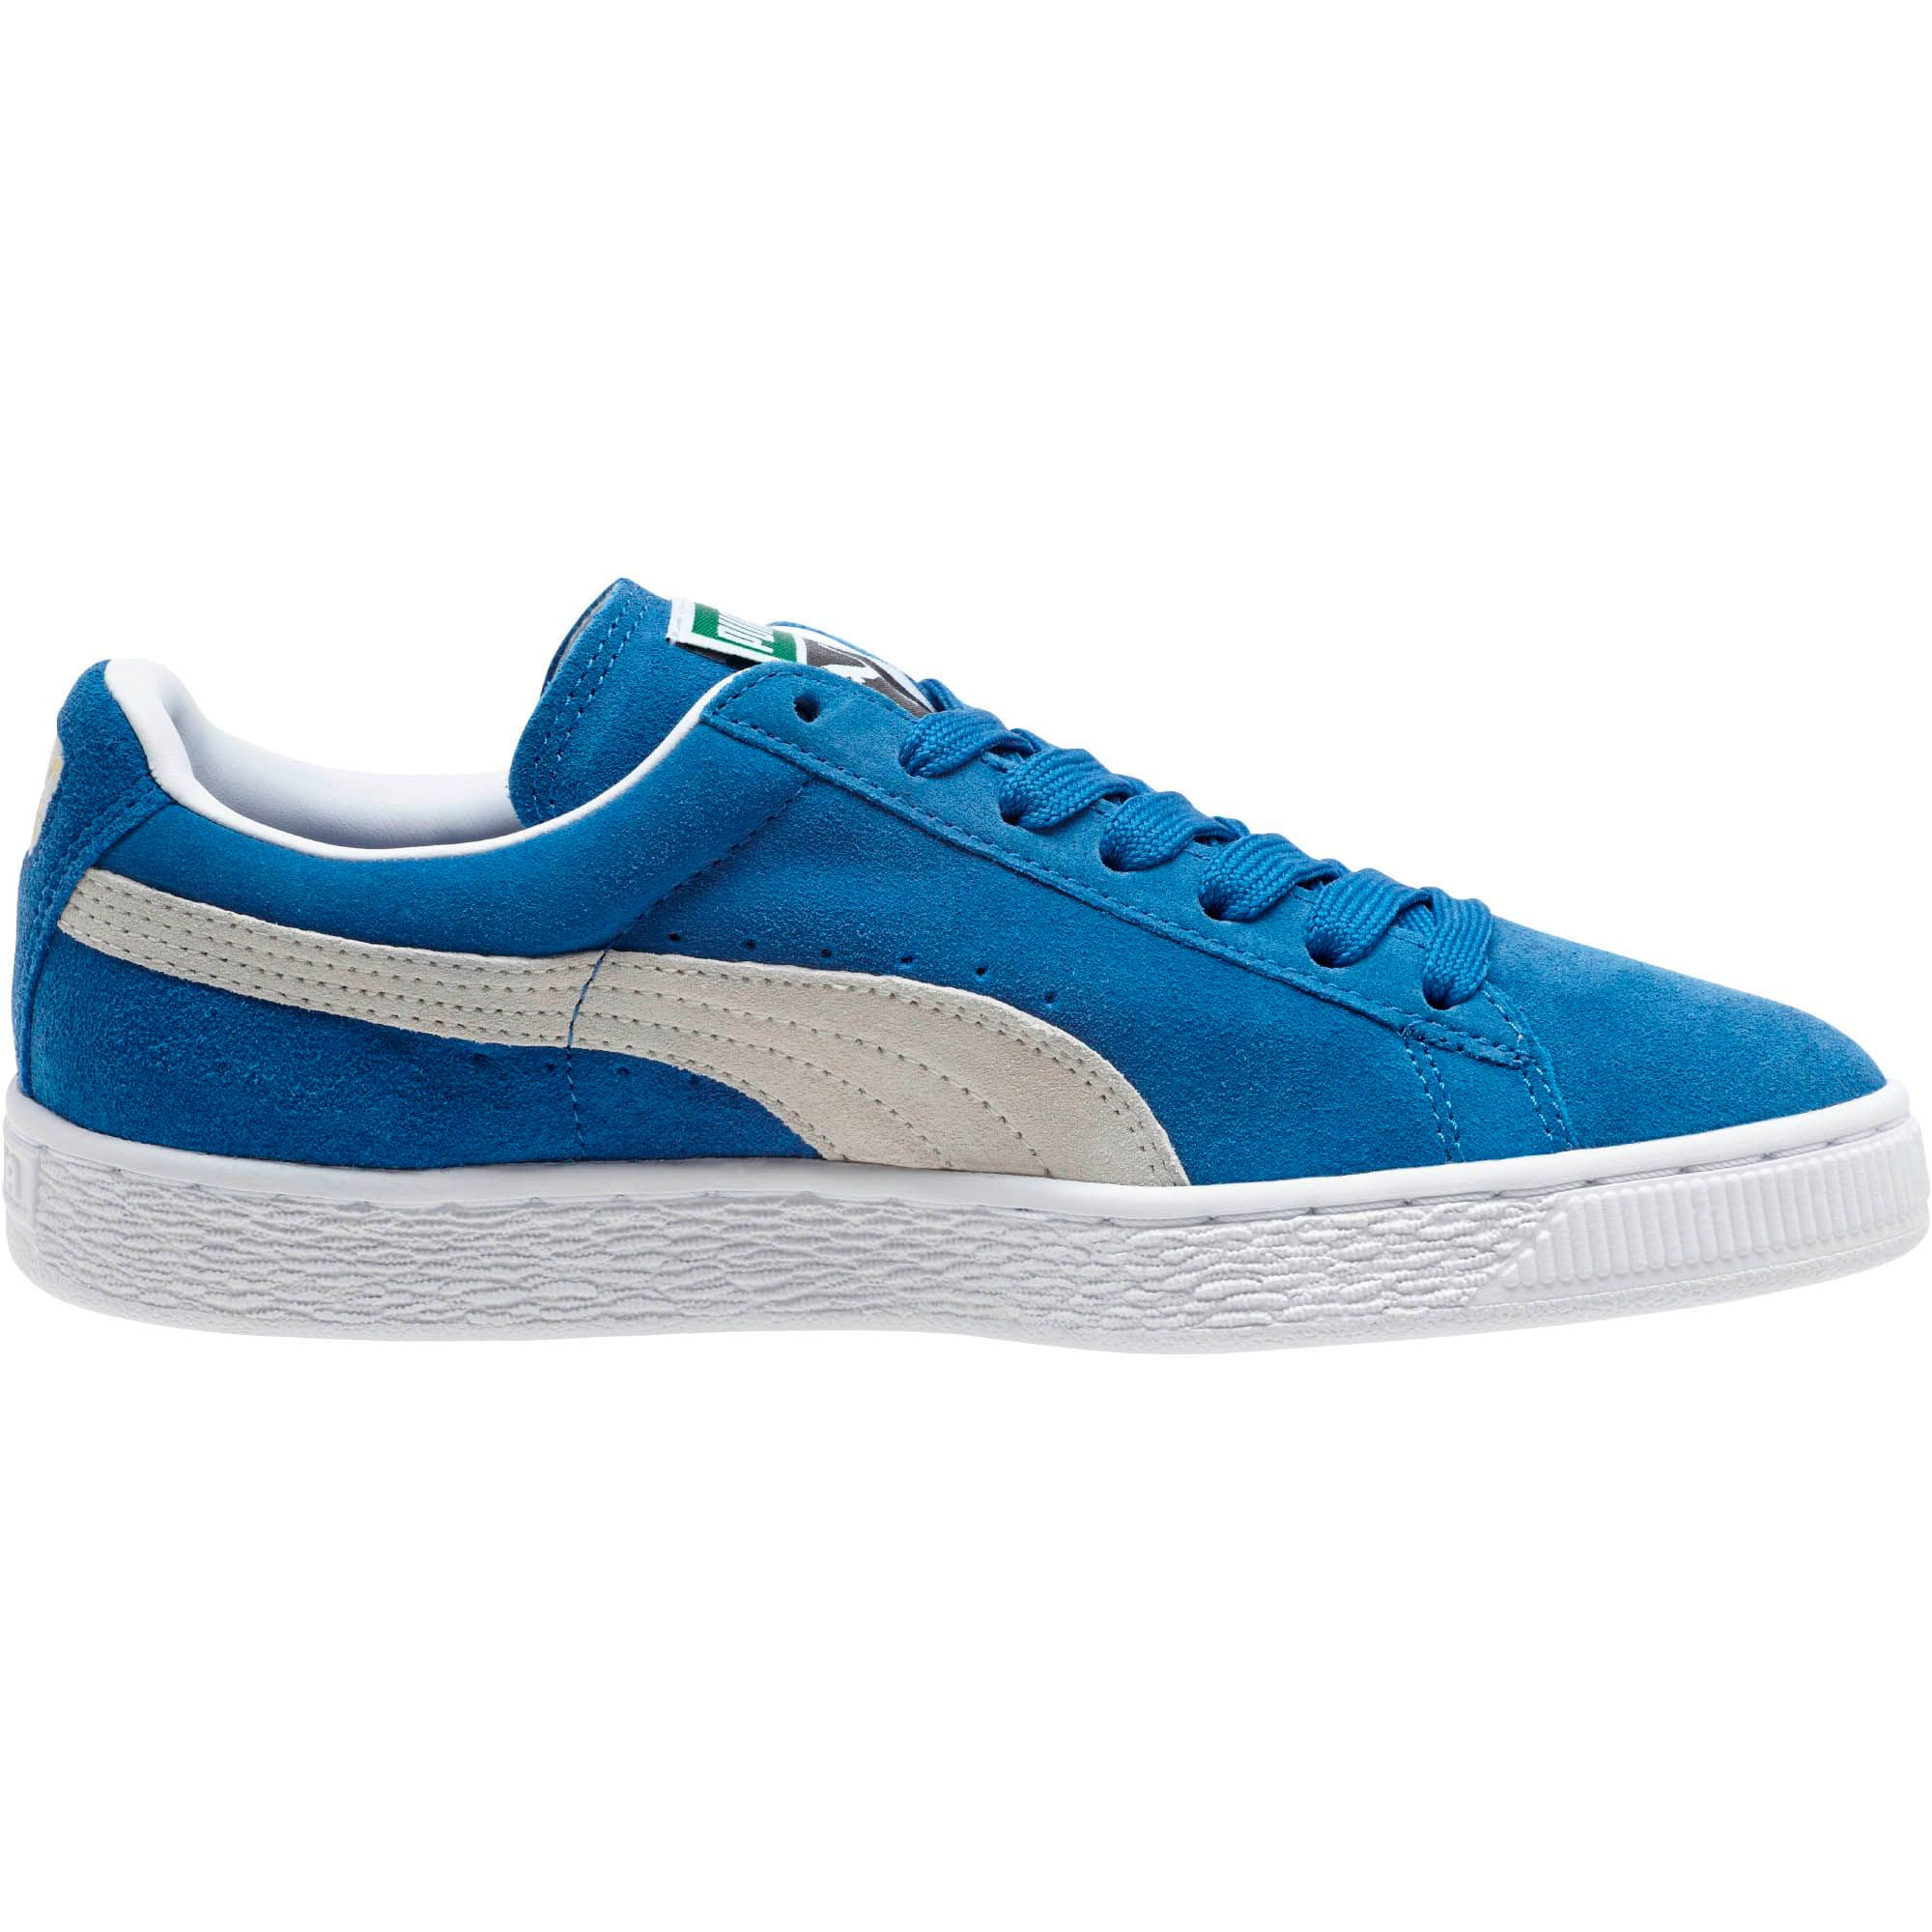 Thumbnail 3 of Suede Classic + Women's Sneakers, olympian blue-white, medium